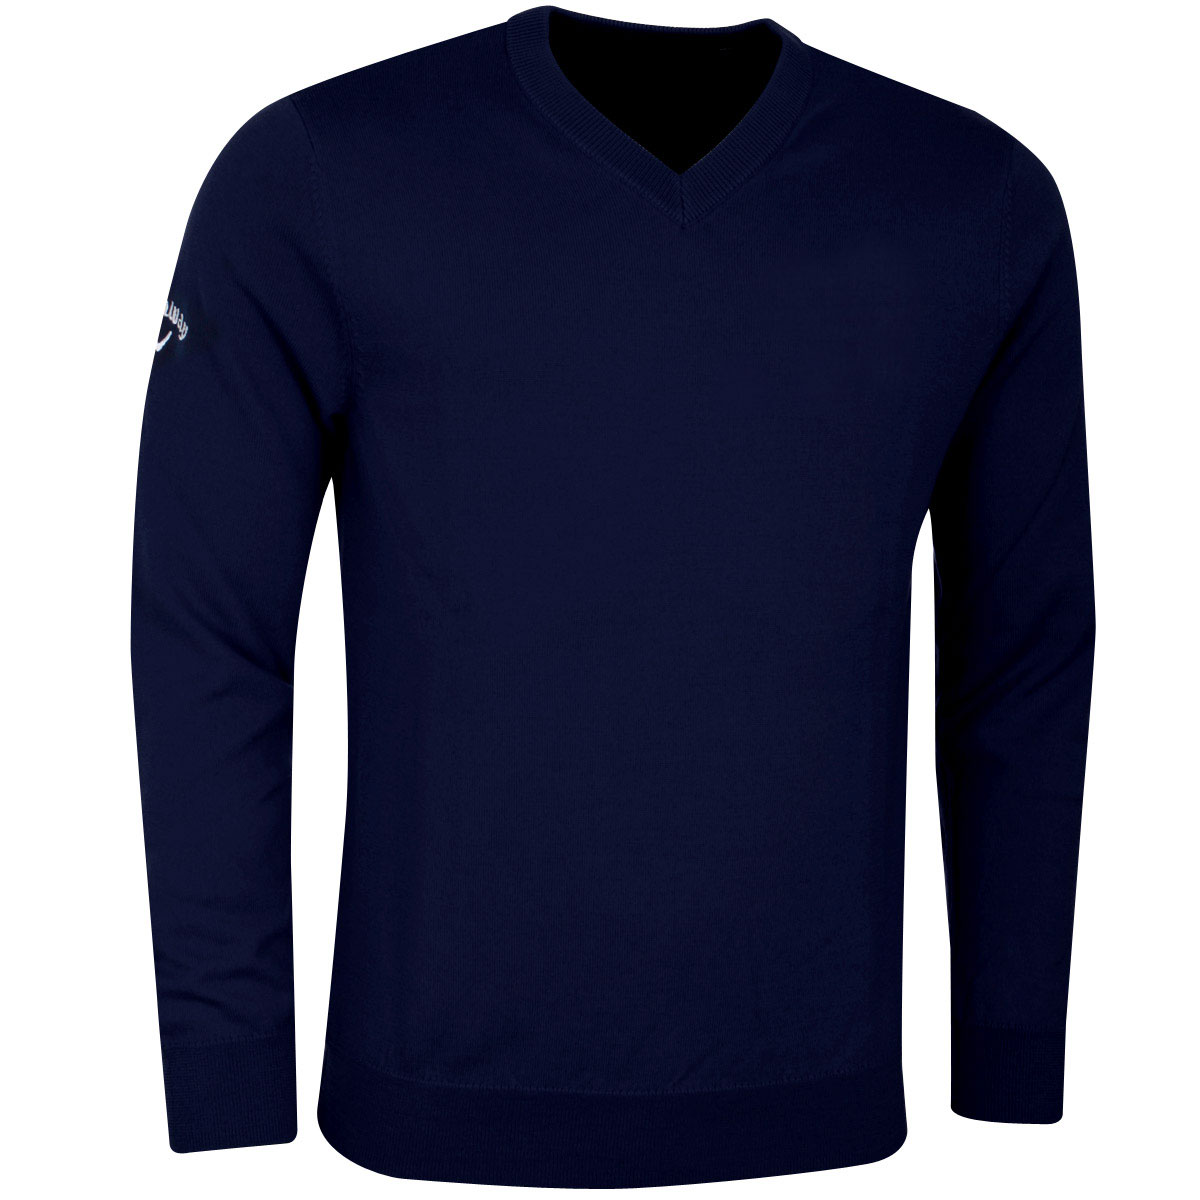 Callaway-Golf-Mens-Ribbed-V-Neck-Merino-Opti-Therm-Sweater-Jumper-64-OFF-RRP thumbnail 9